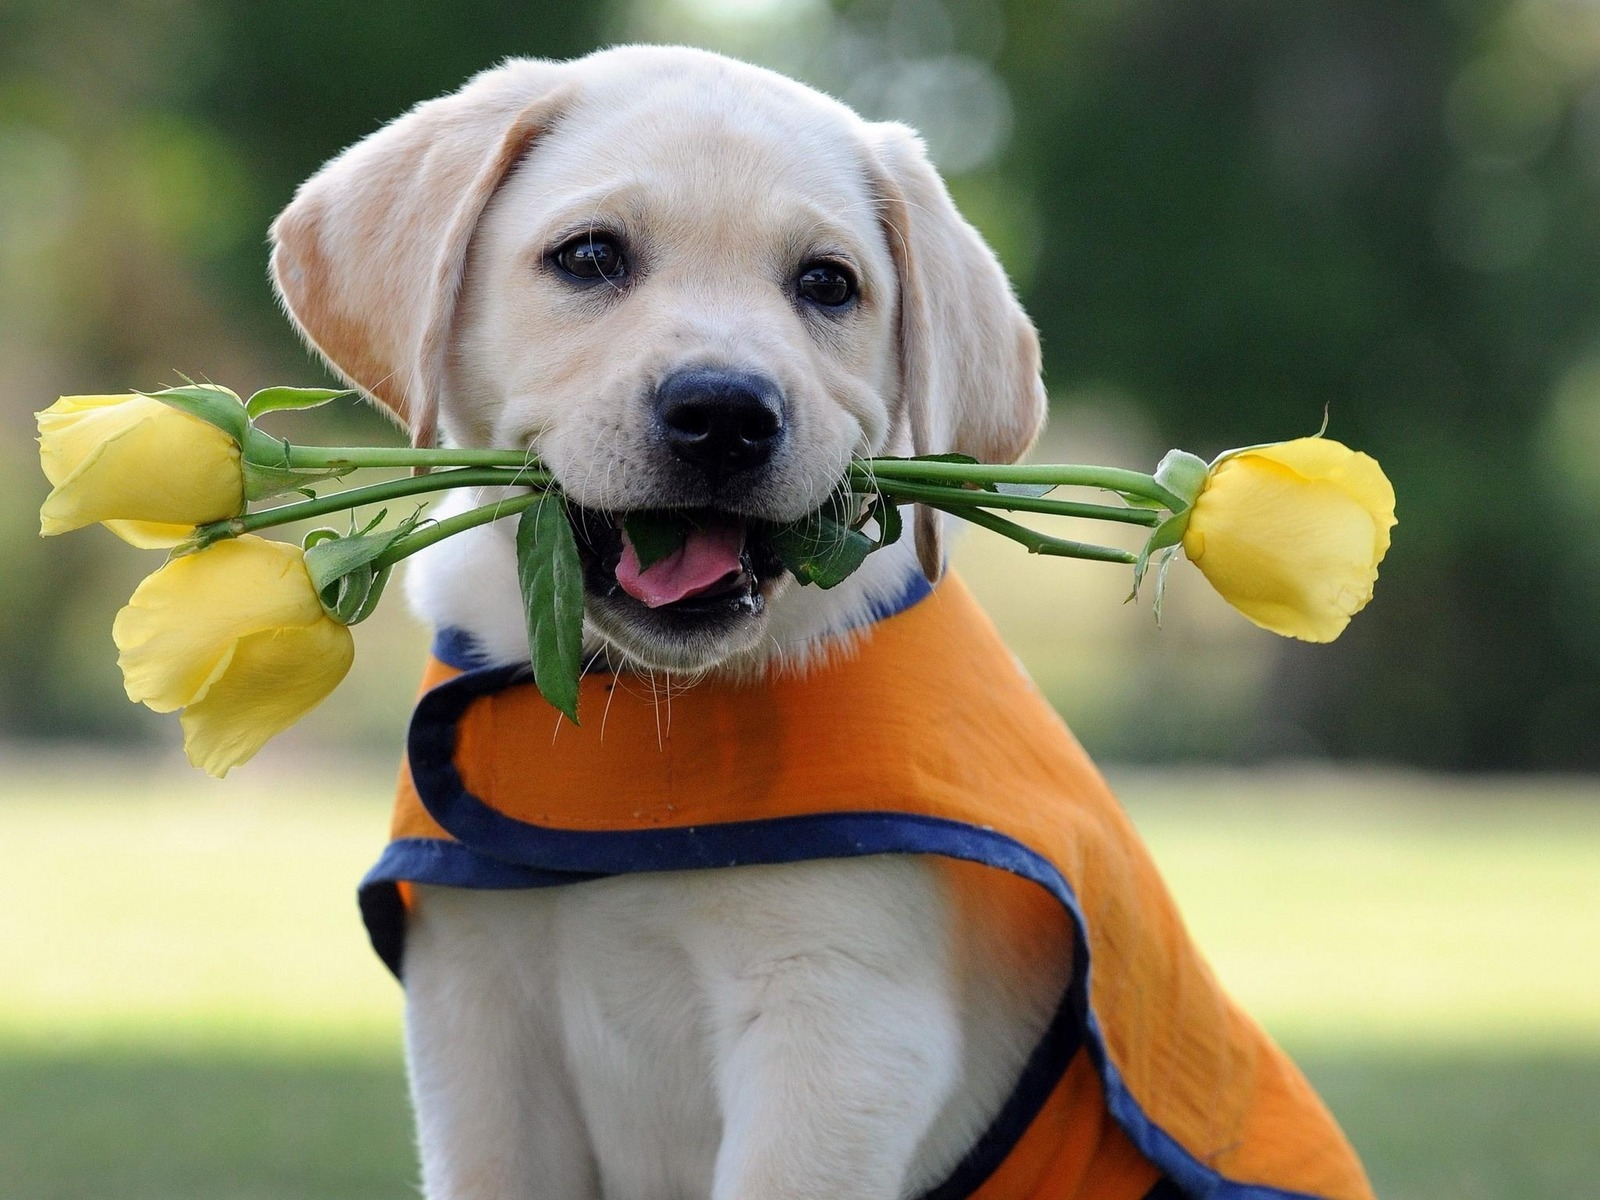 19052 download wallpaper Animals, Dogs screensavers and pictures for free